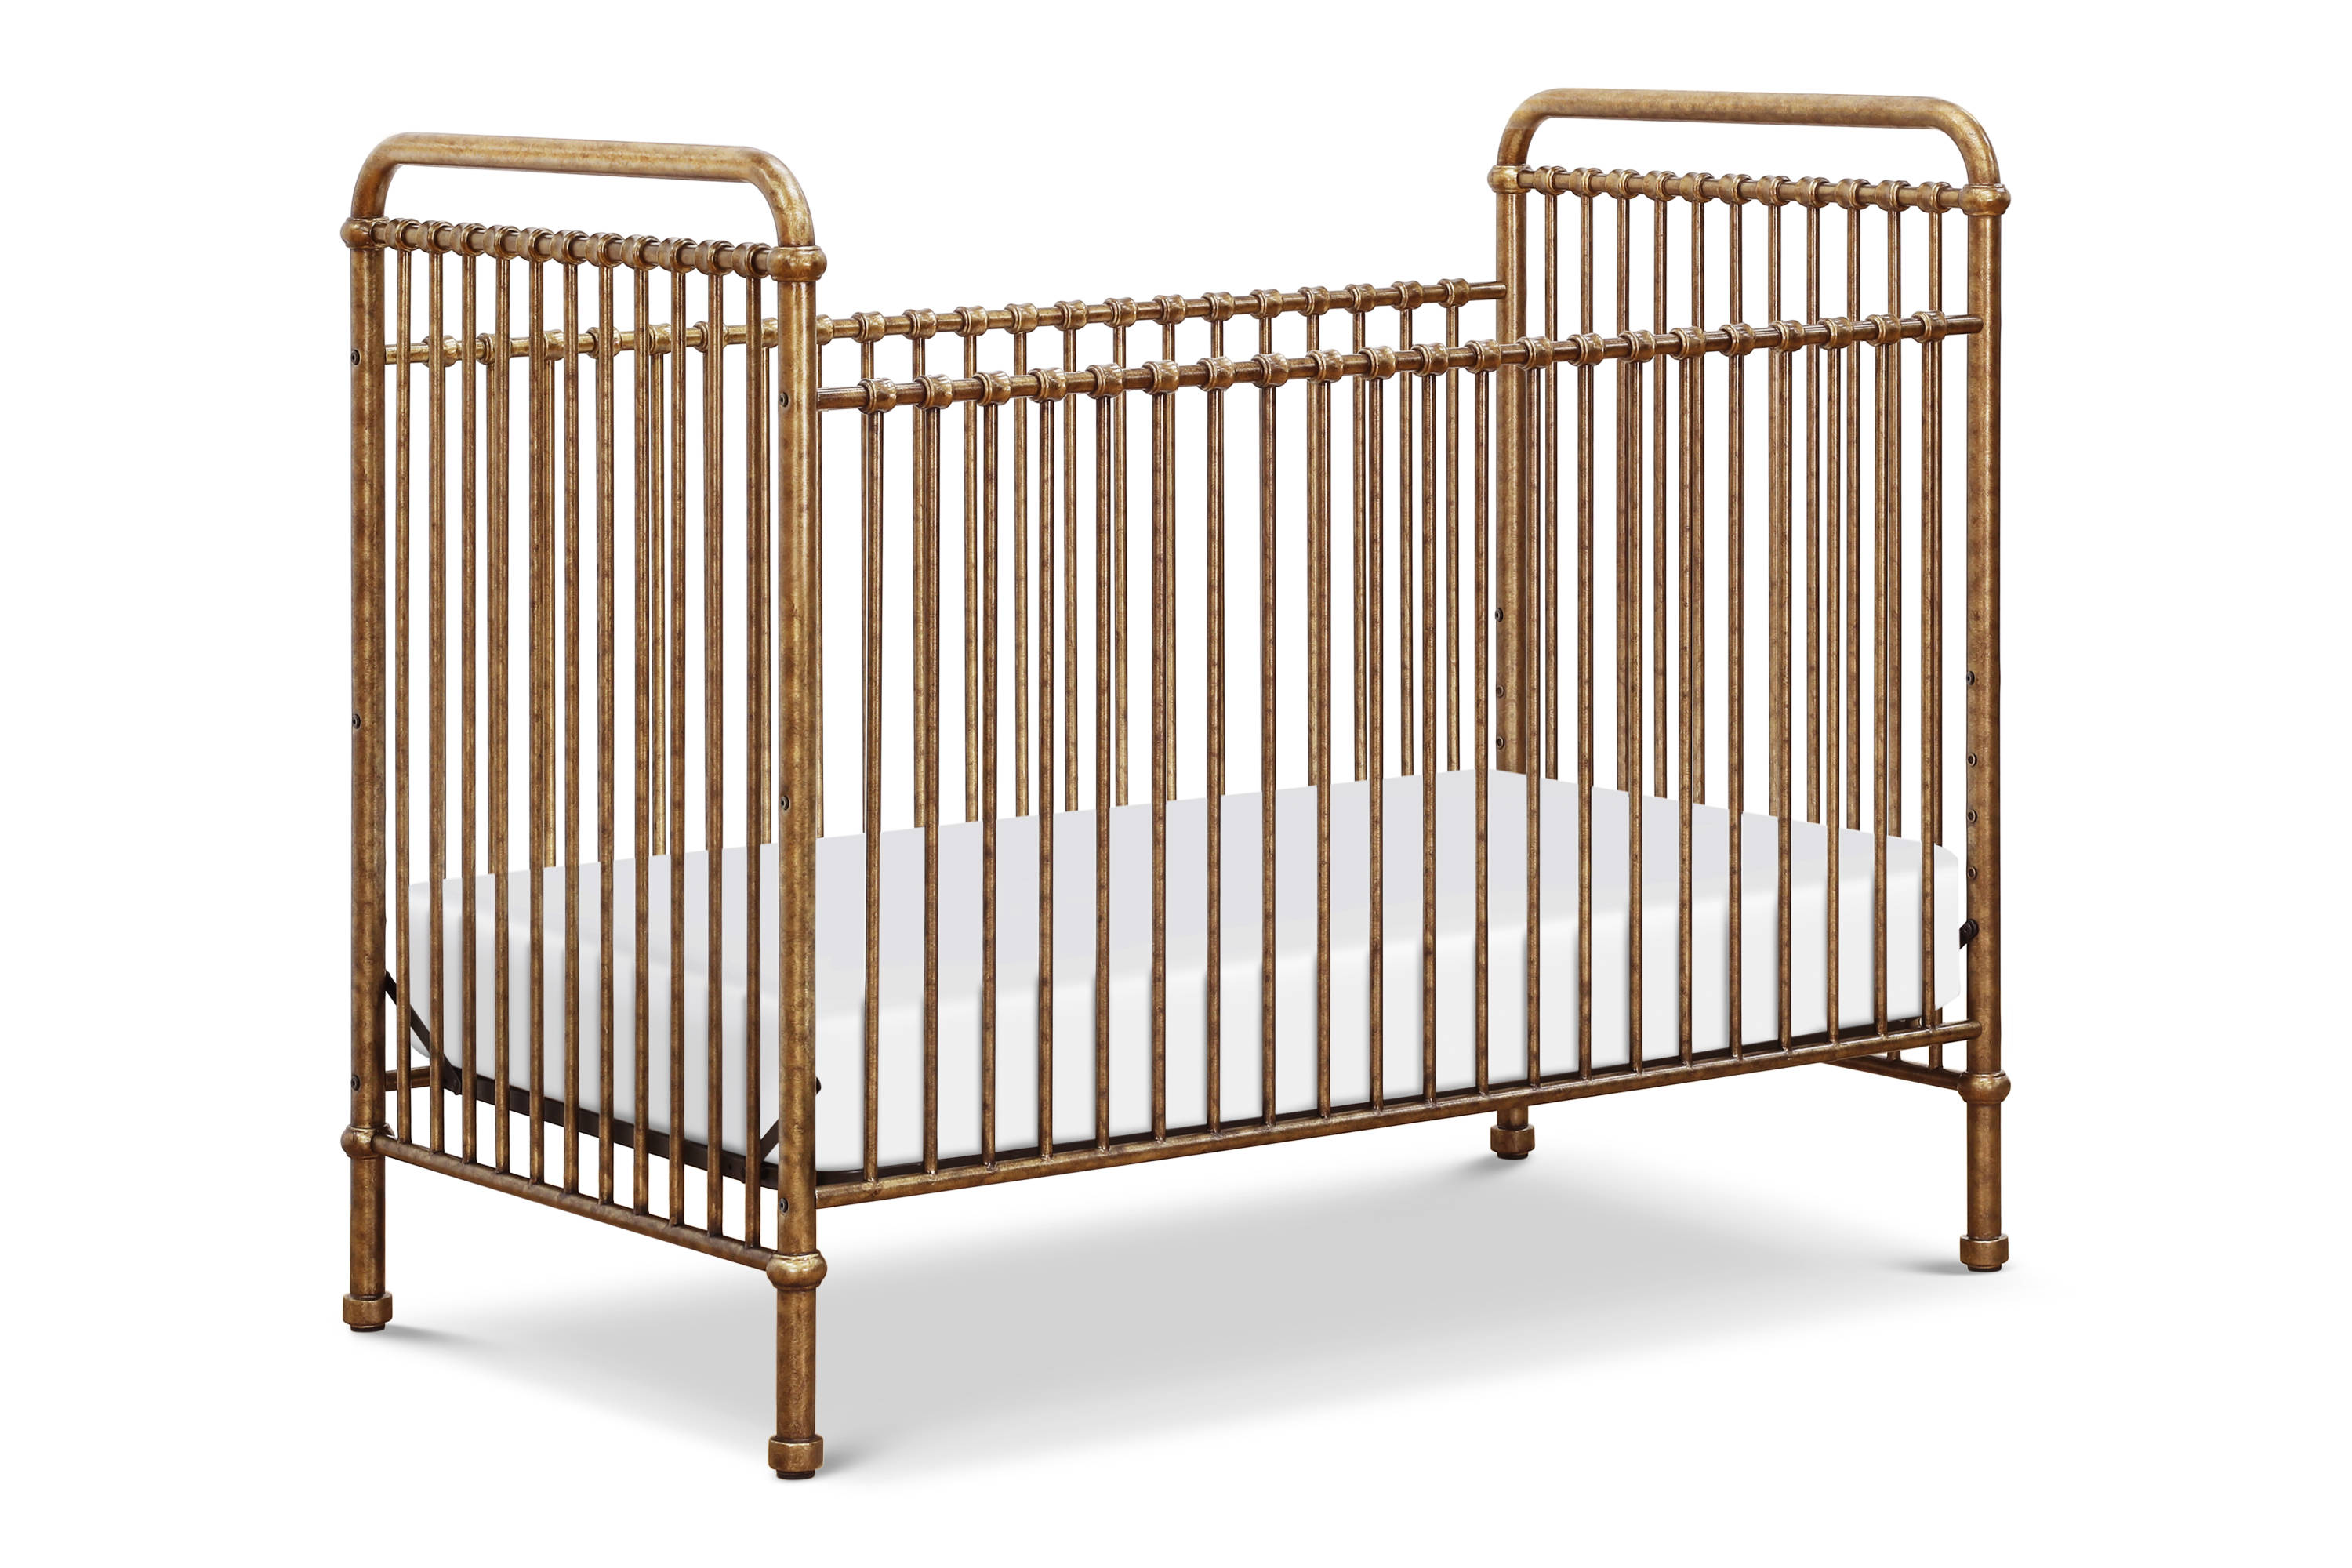 Franklin & Ben Abigail Metal Crib - Vintage Gold